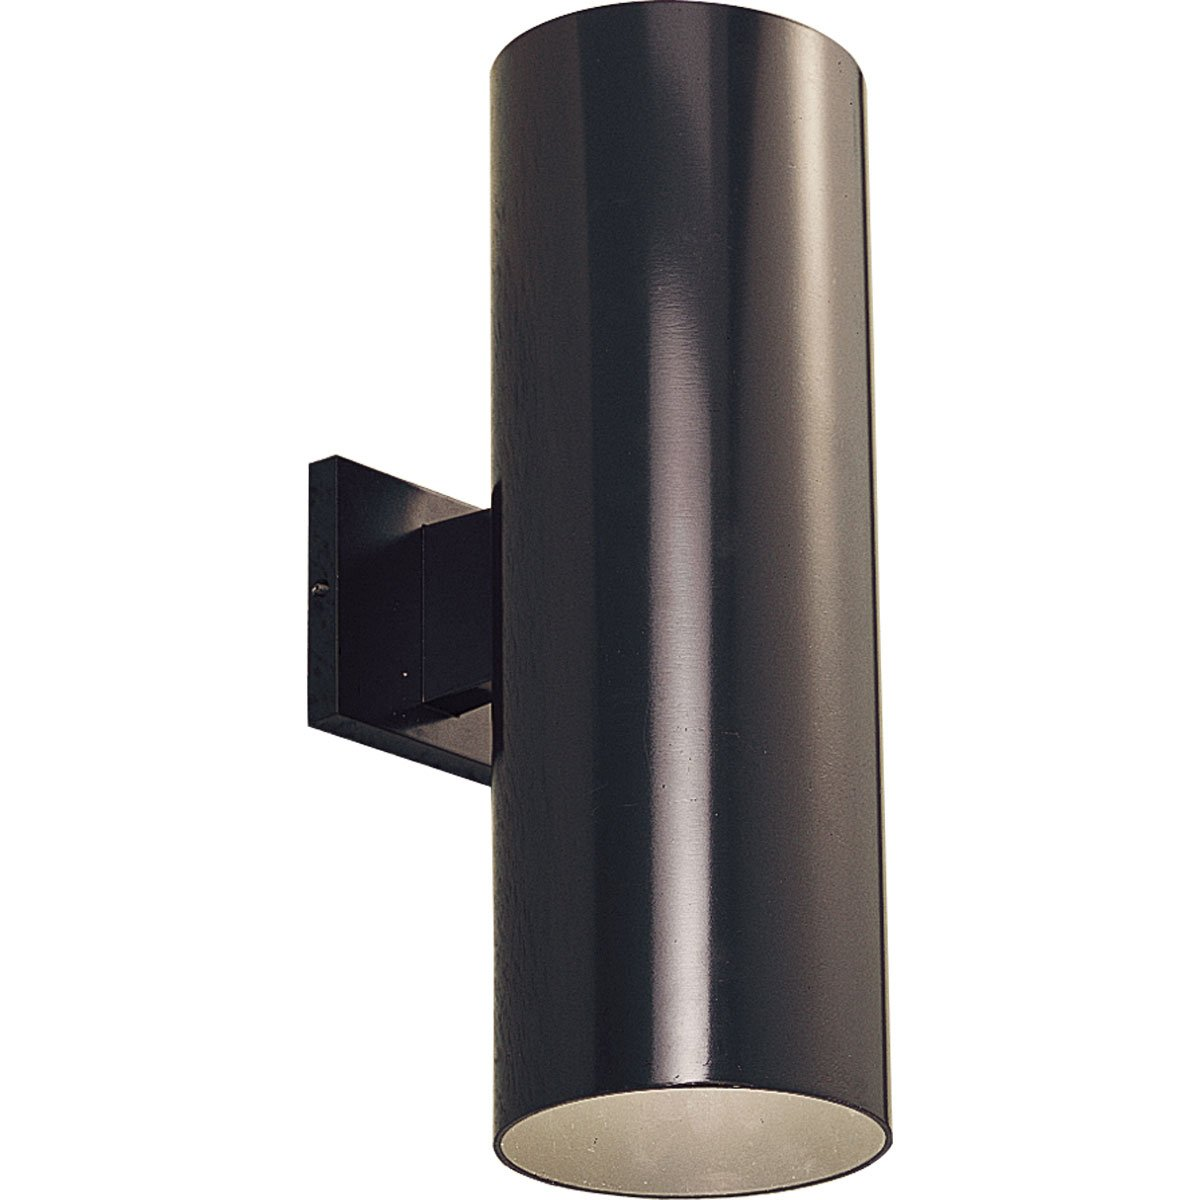 Progress Lighting P5642 20 6 Inch Updown Cylinder With Heavy Duty